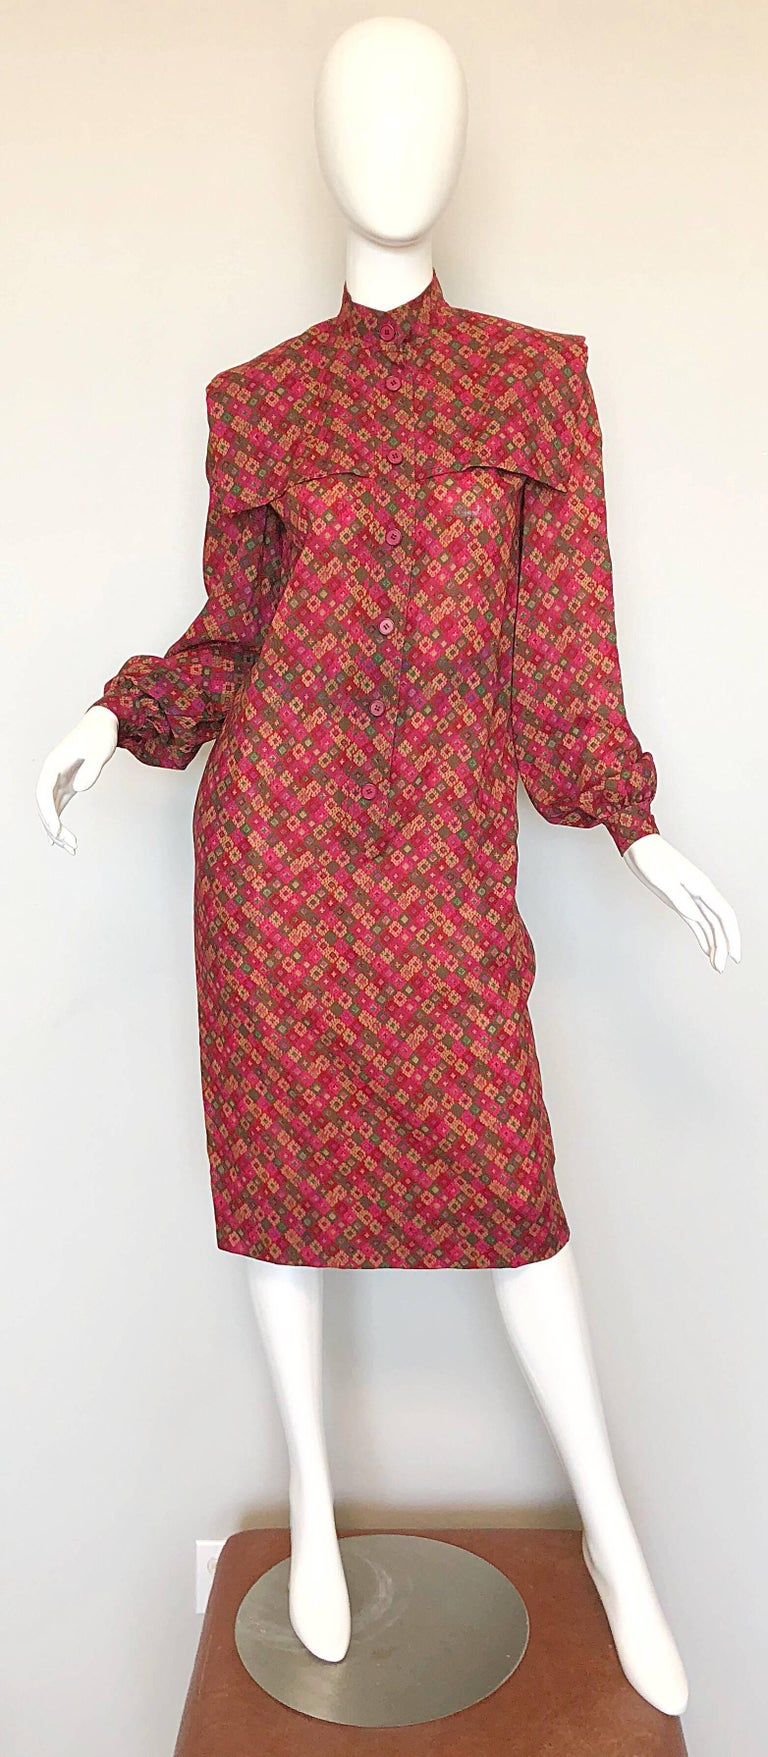 Vintage Givenchy 1980s Mosaic Tile Print Pink + Green Lightweight Wool Sac Dress For Sale 2